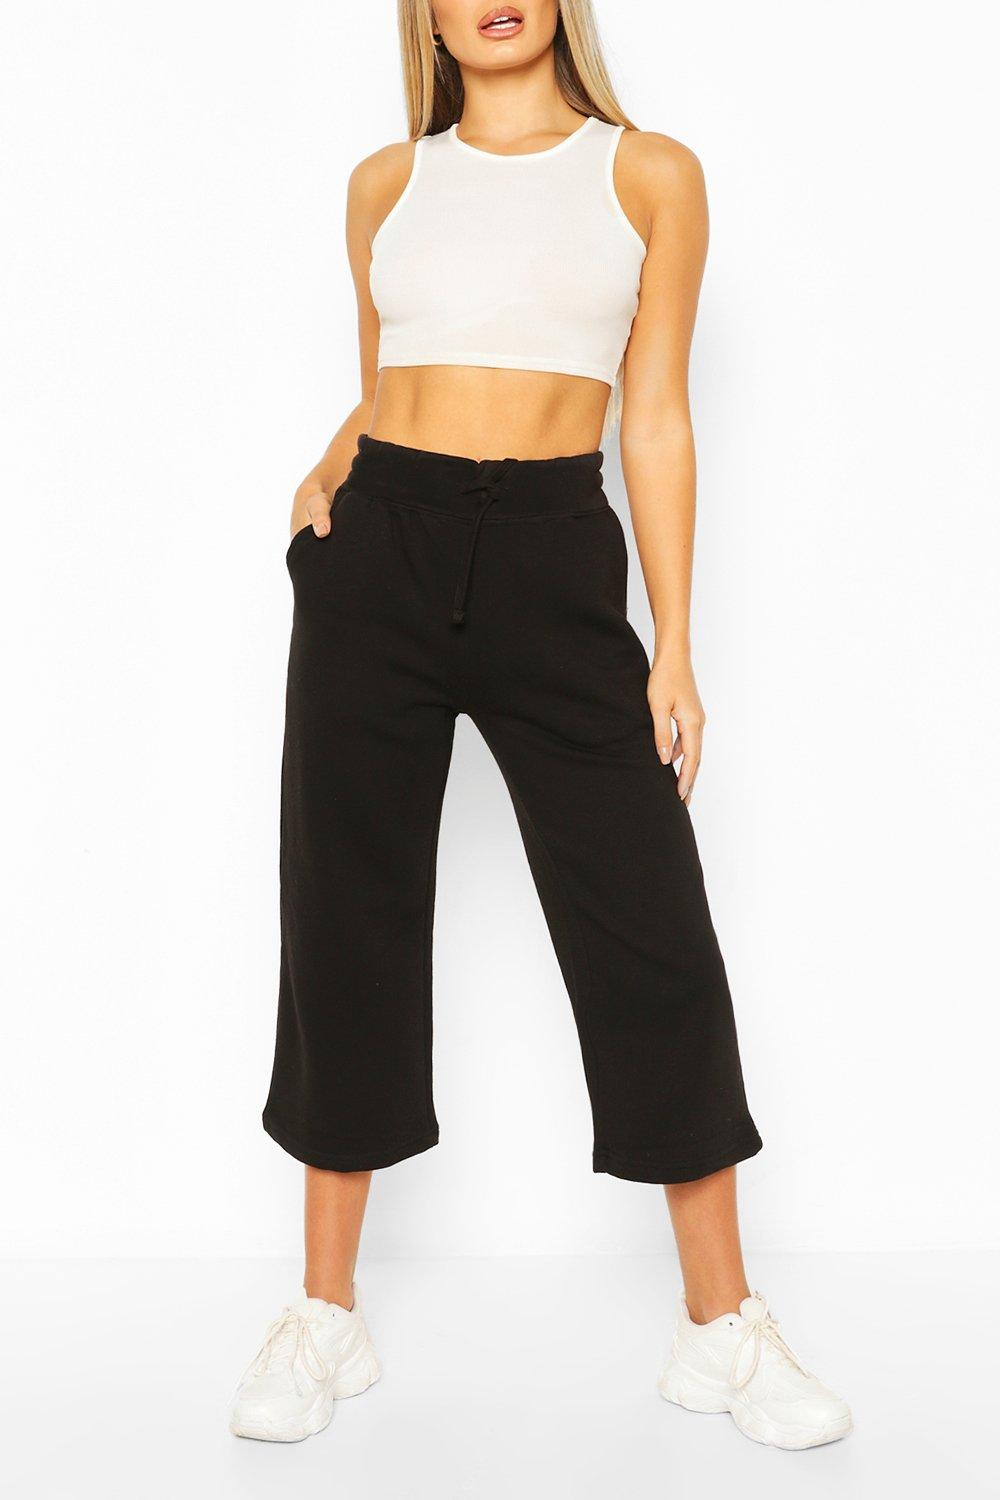 SALE Cropped Jogger